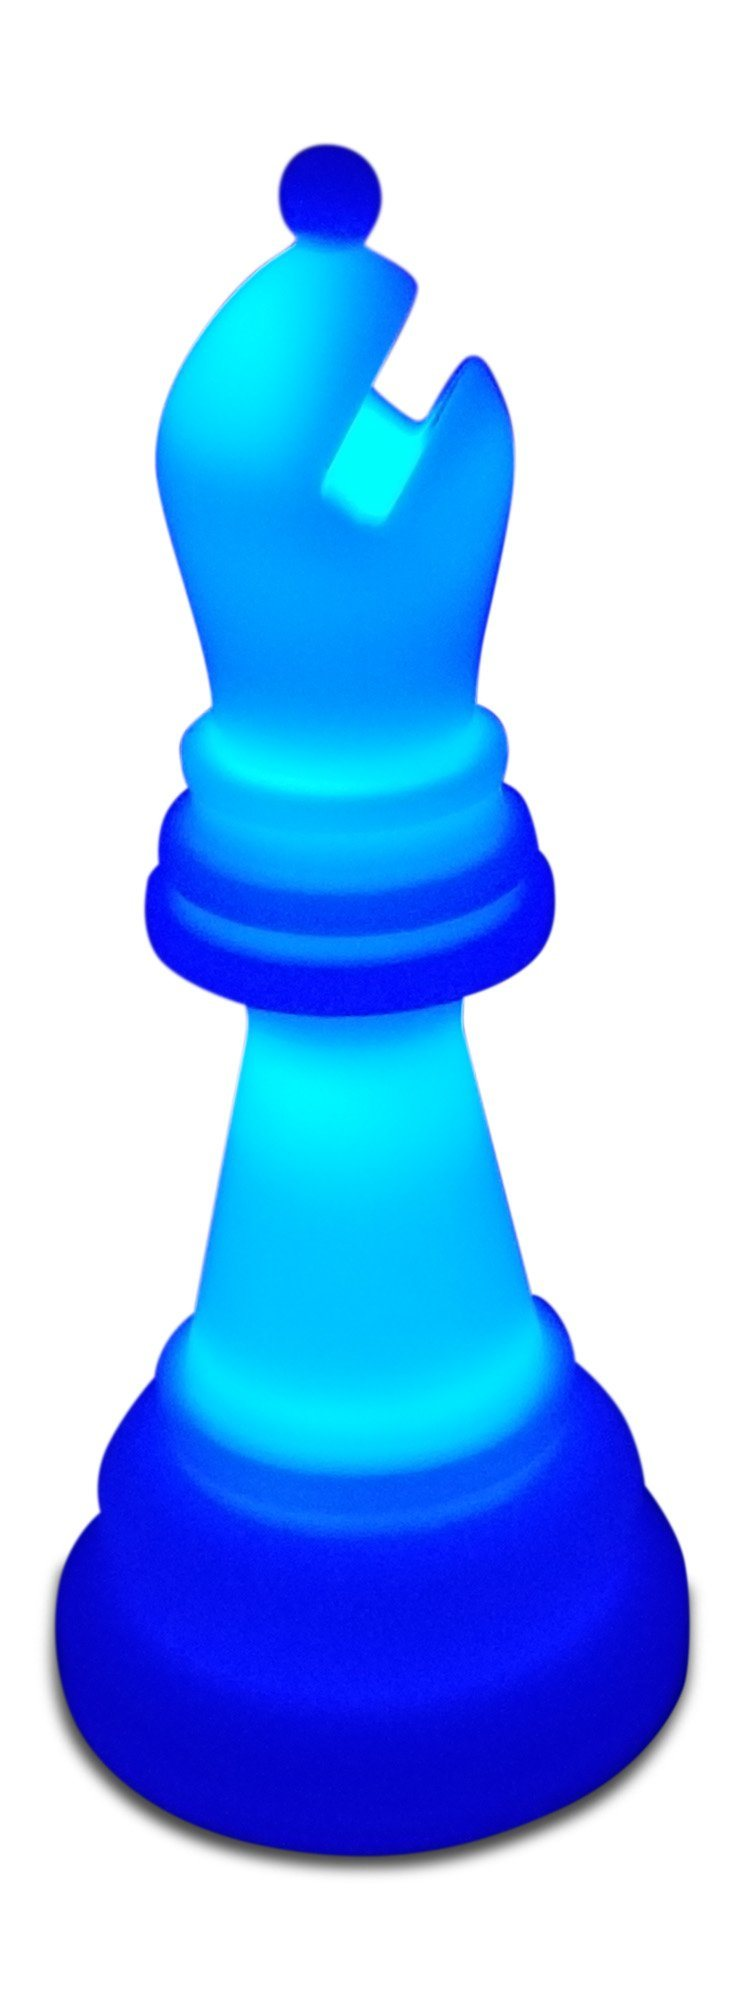 MegaChess 28 Inch Perfect Bishop Light-Up Giant Chess Piece - Blue | Default Title | MegaChess.com